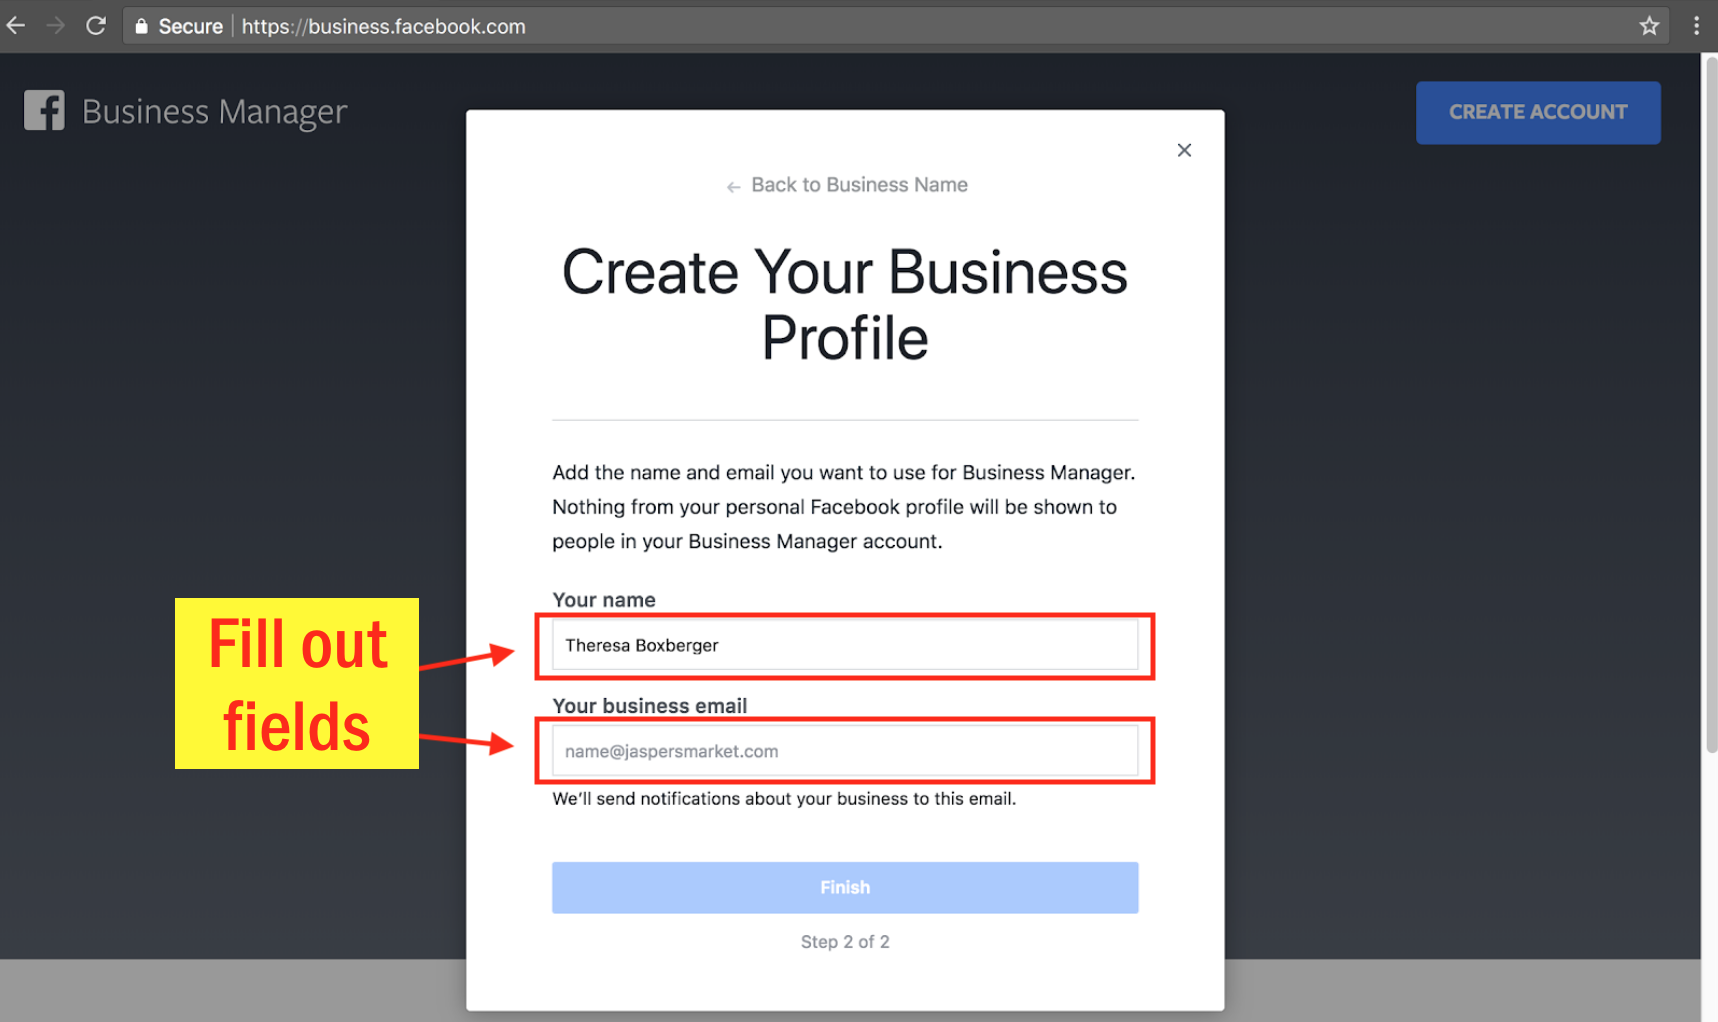 Sign Up for Facebook Business Manager - Step 5 Screenshot